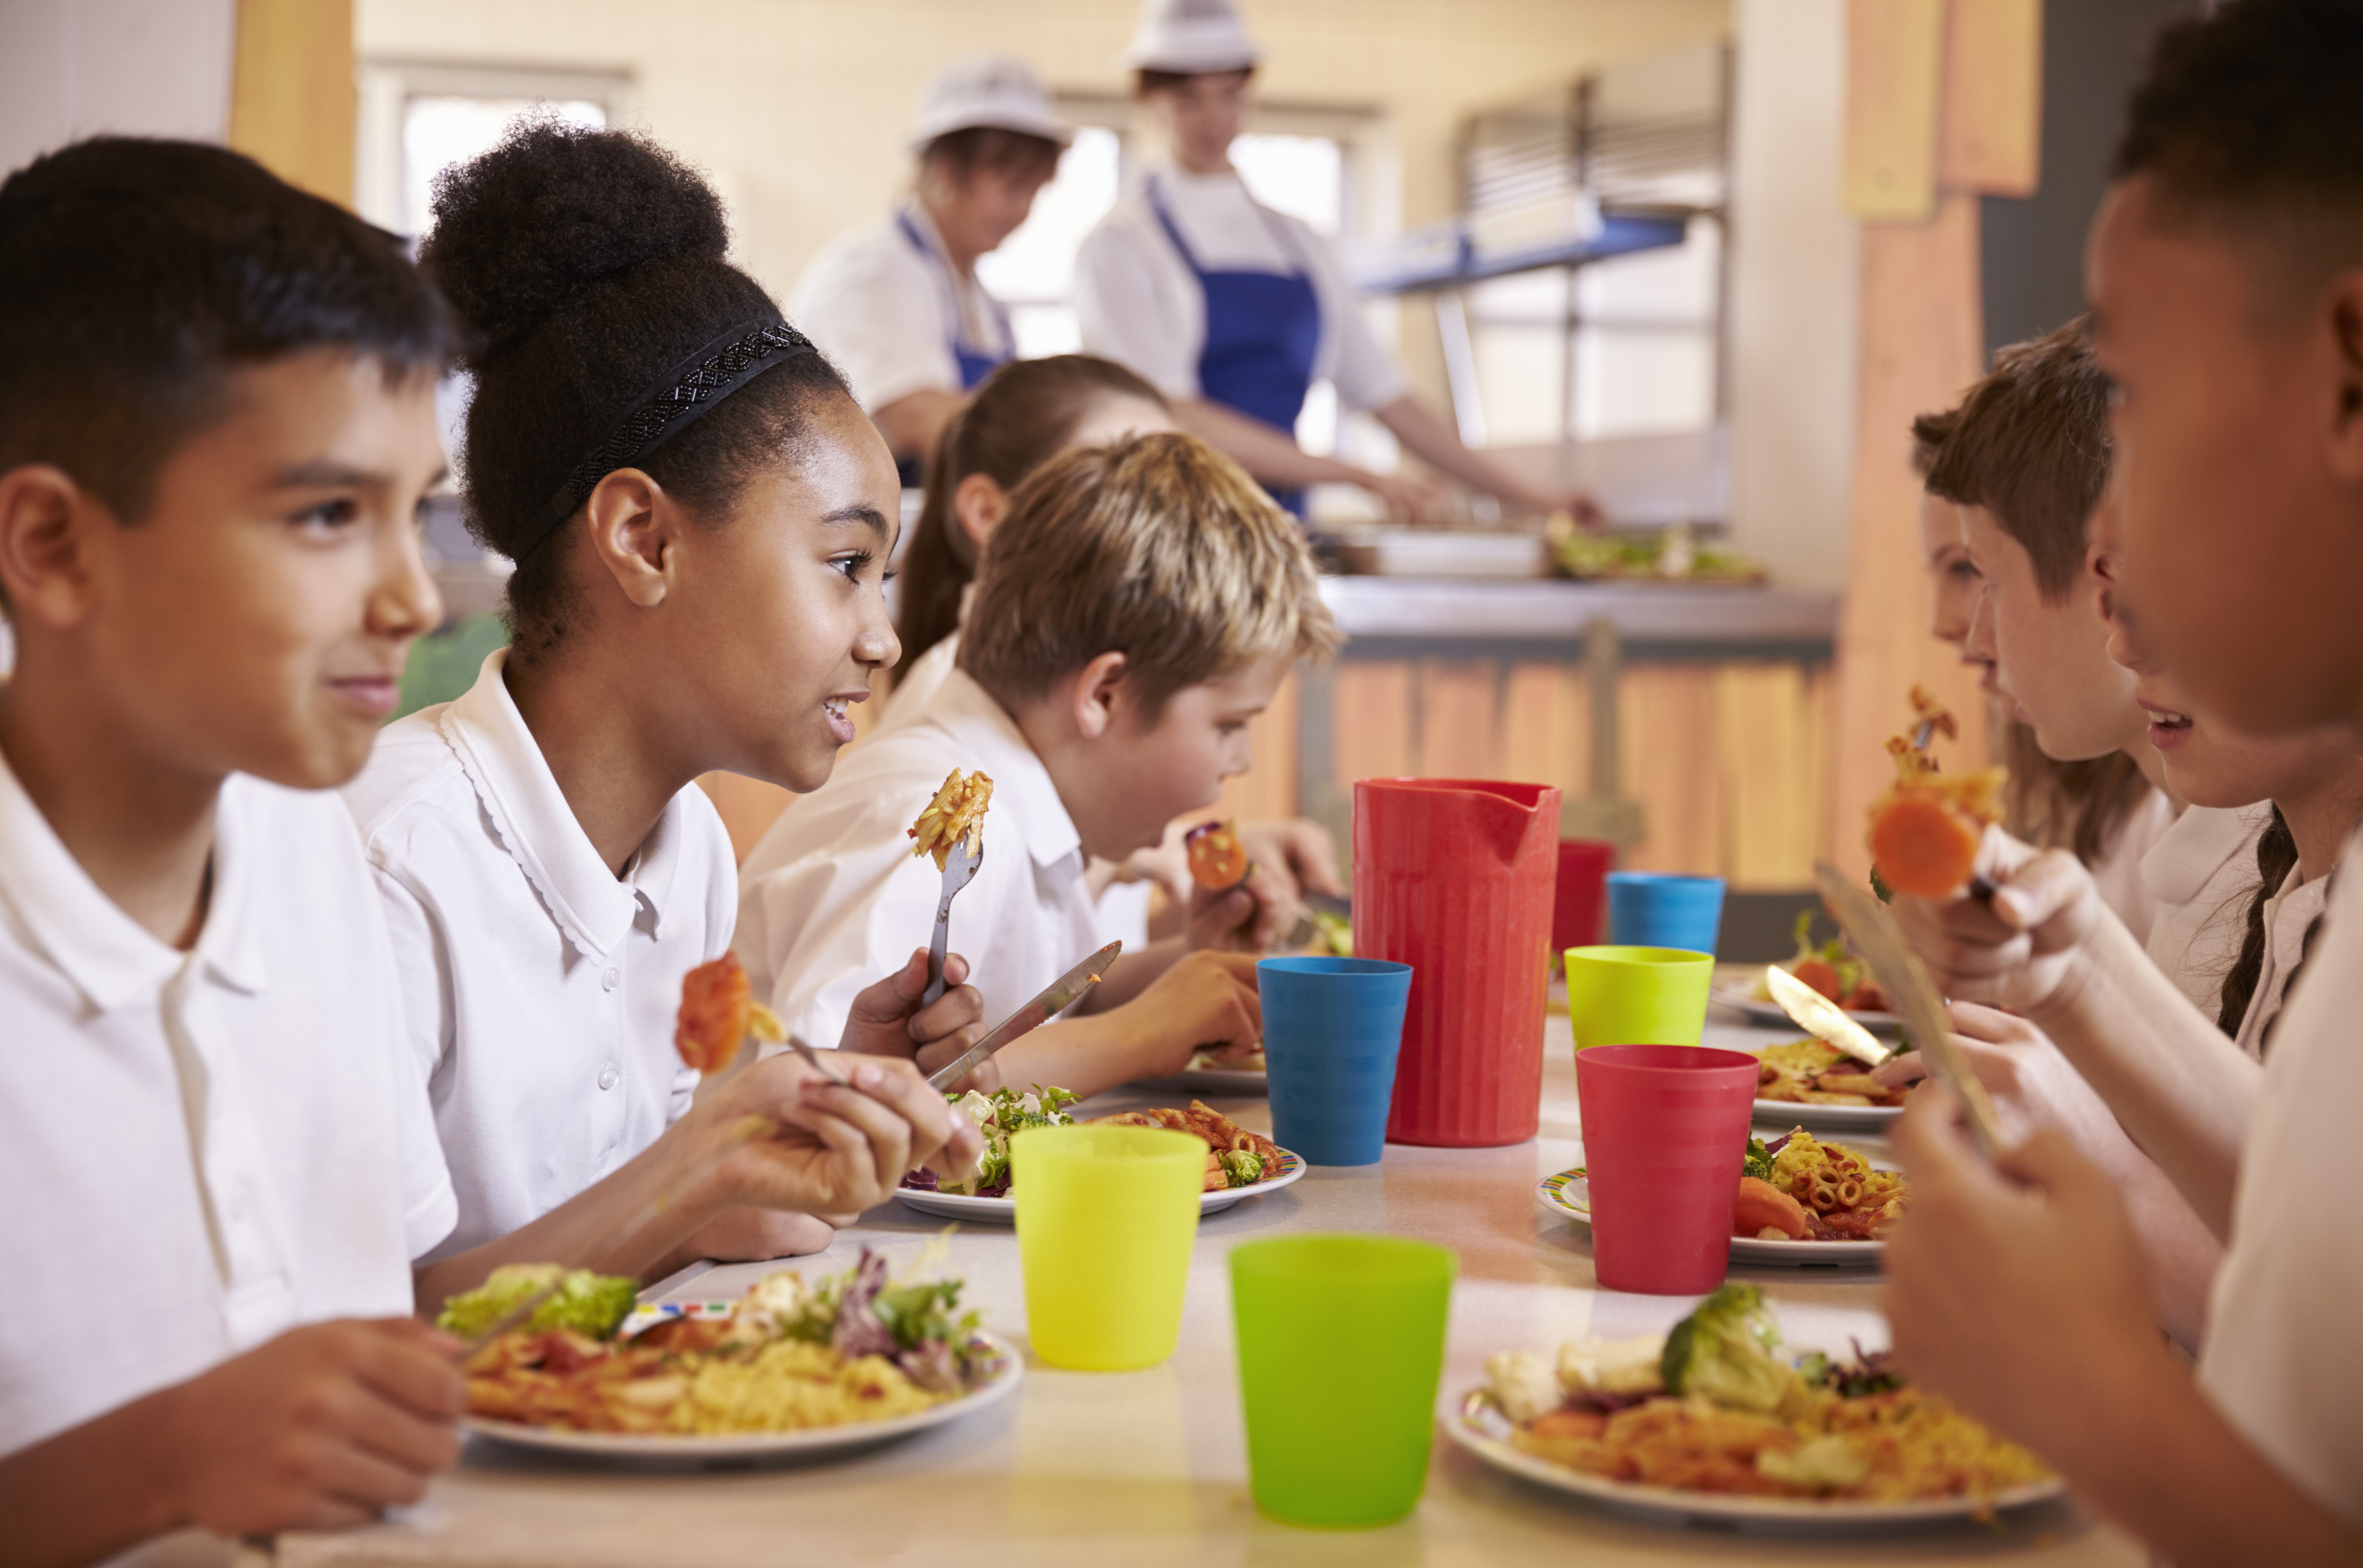 Implementing strong school nutrition policies is associated with healthier weight trajectories in middle school students, according to a new study by researchers at UConn and Yale. (Shutterstock Photo)